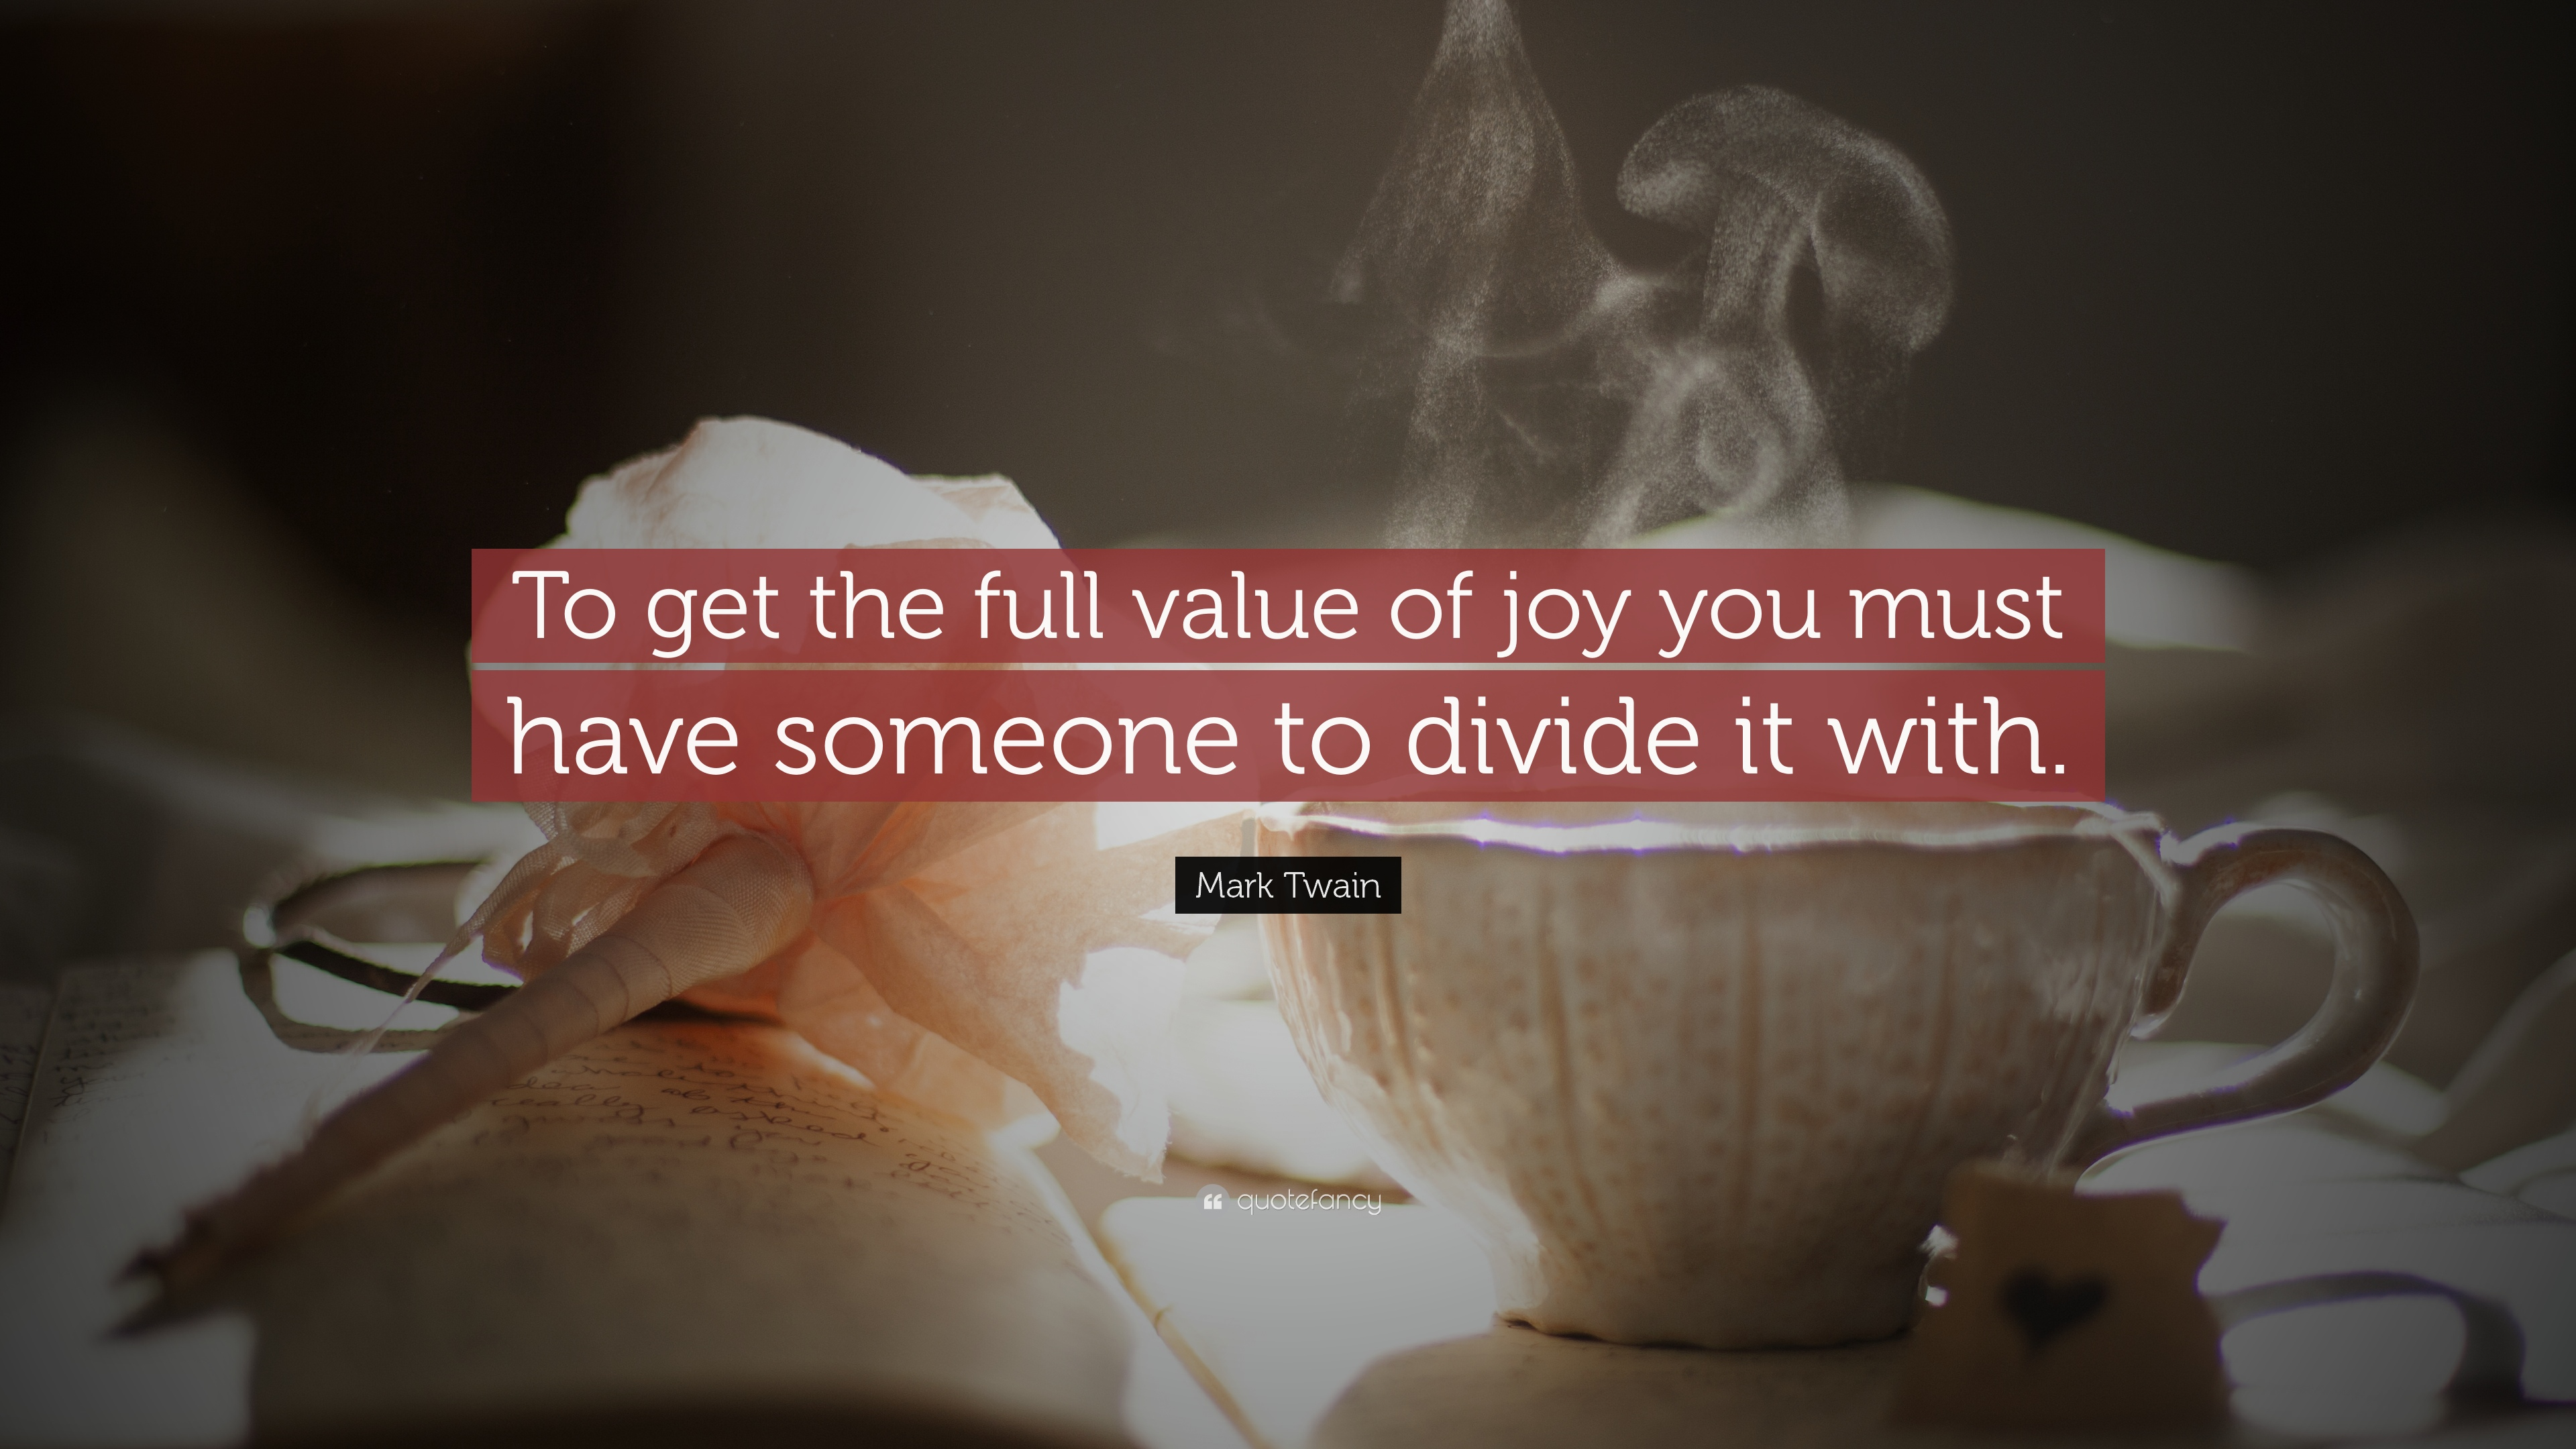 Mark Twain Quote: U201cTo Get The Full Value Of Joy You Must Have Someone